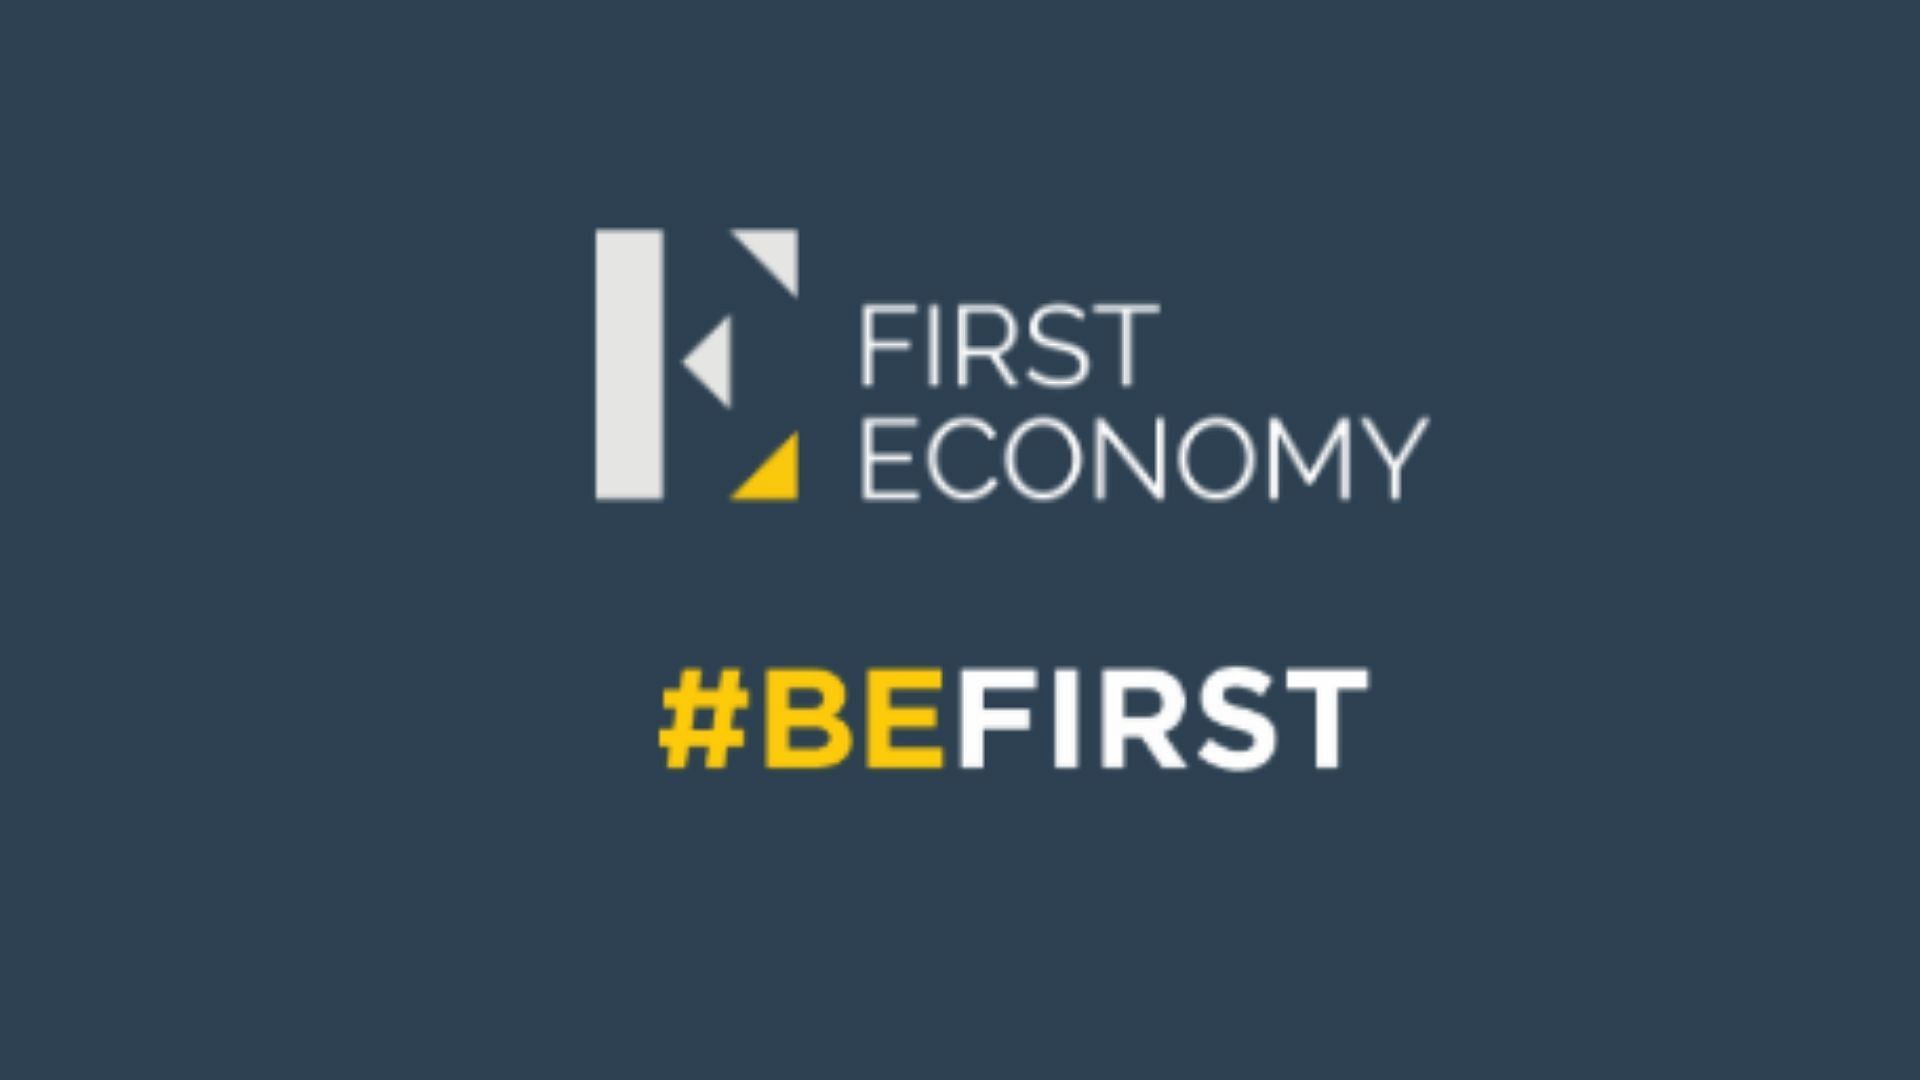 First Economy